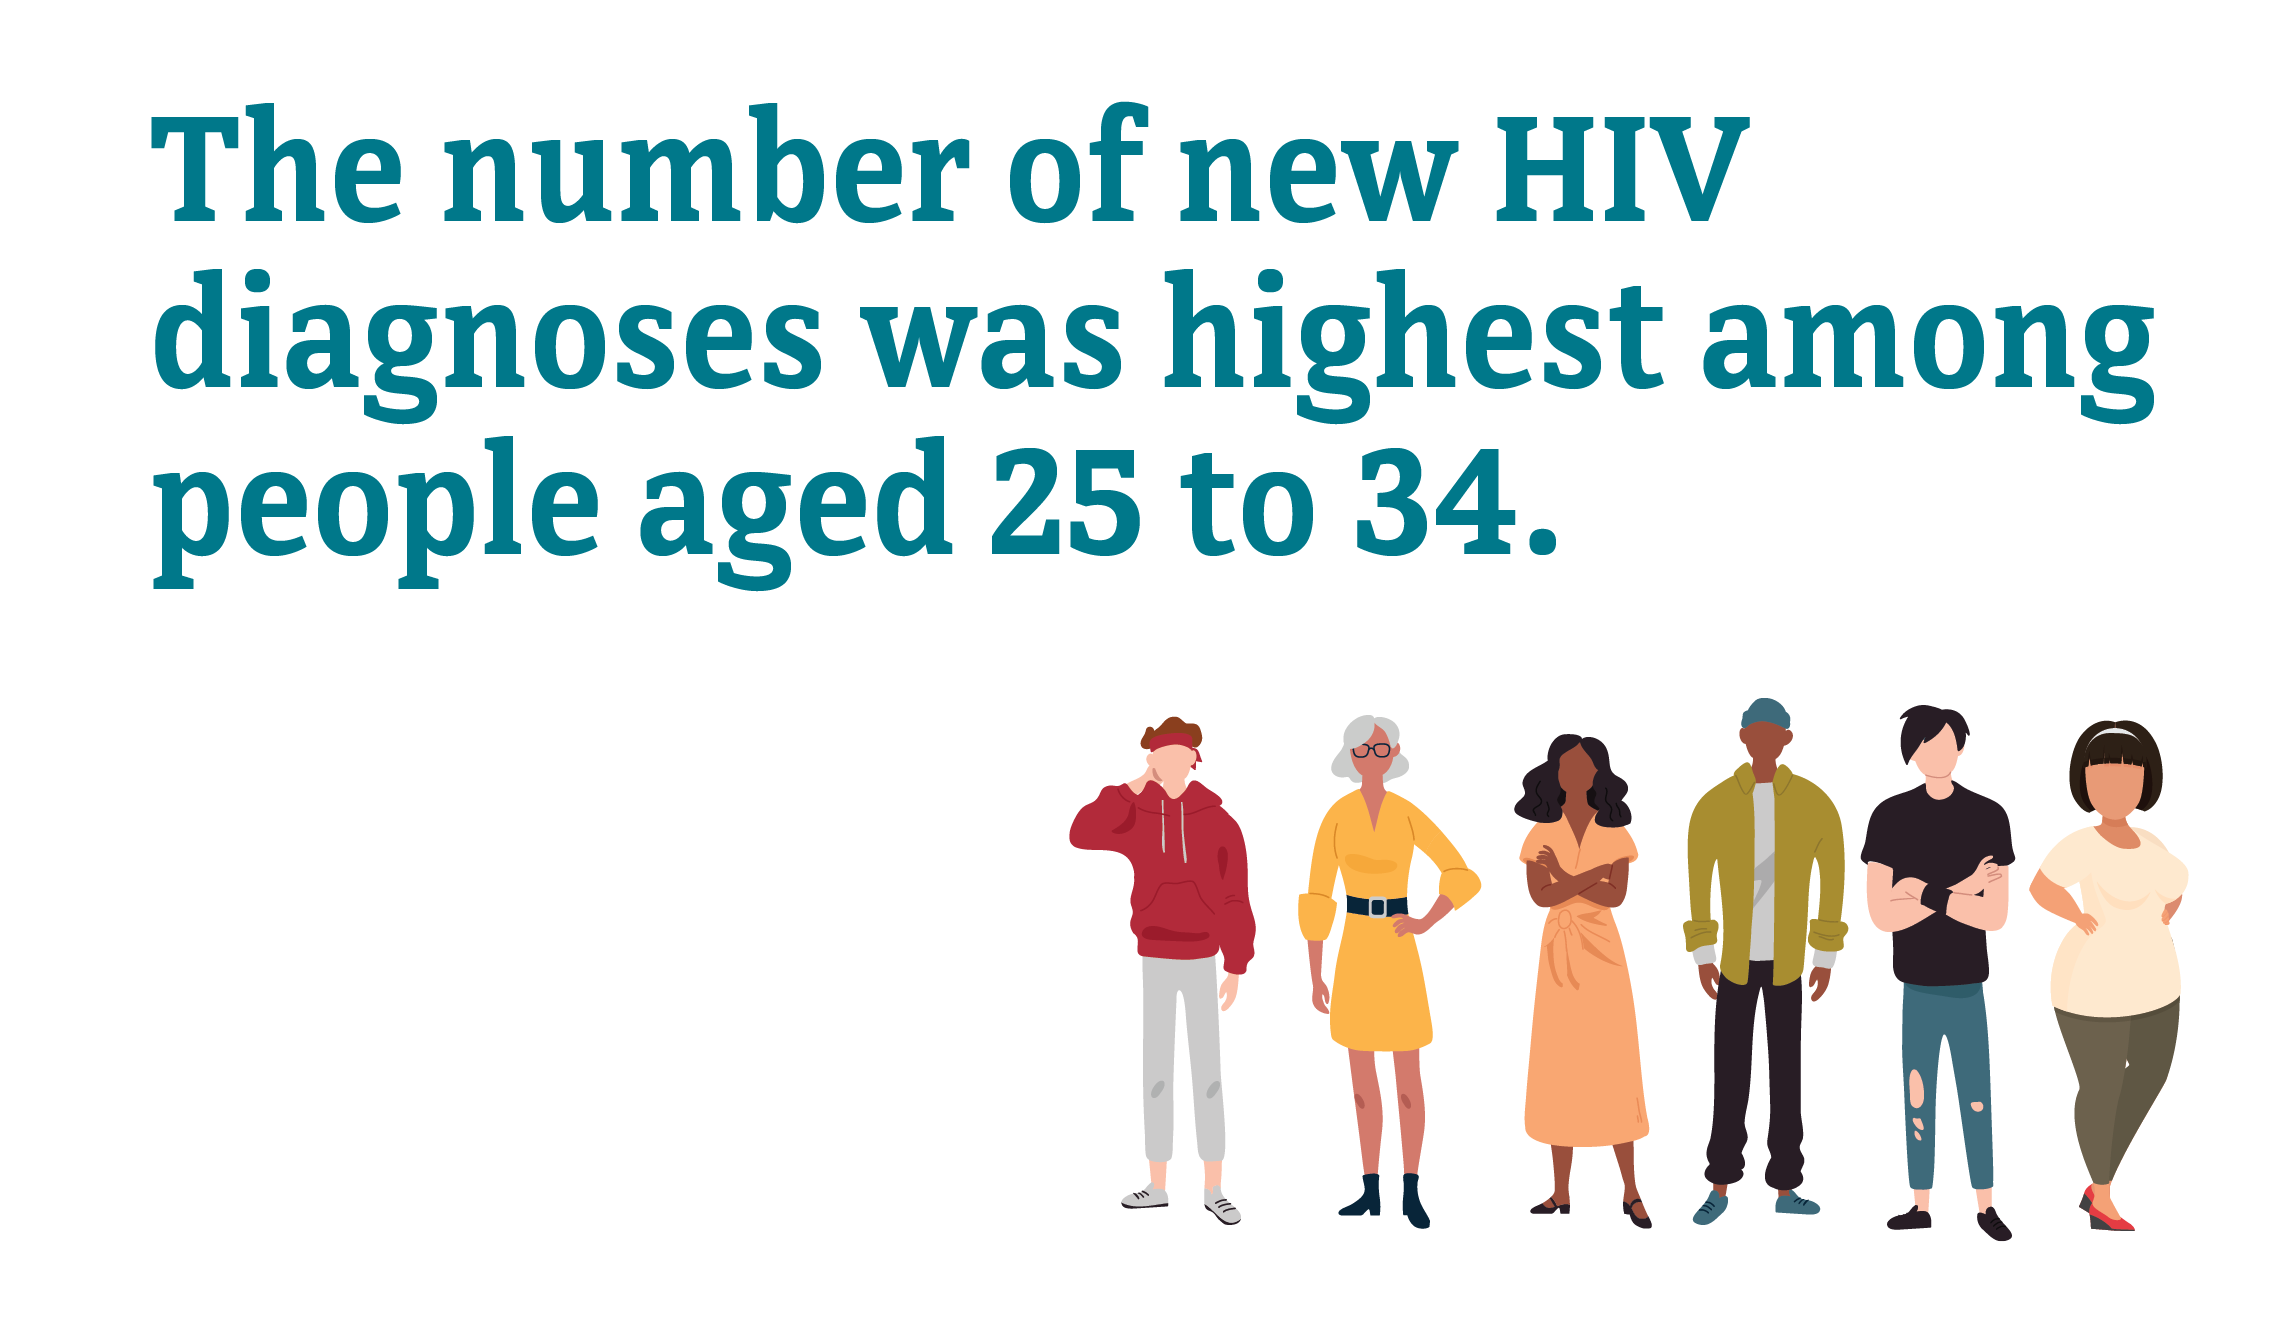 The number of new HIV diagnoses was highest among people aged 25 to 34.